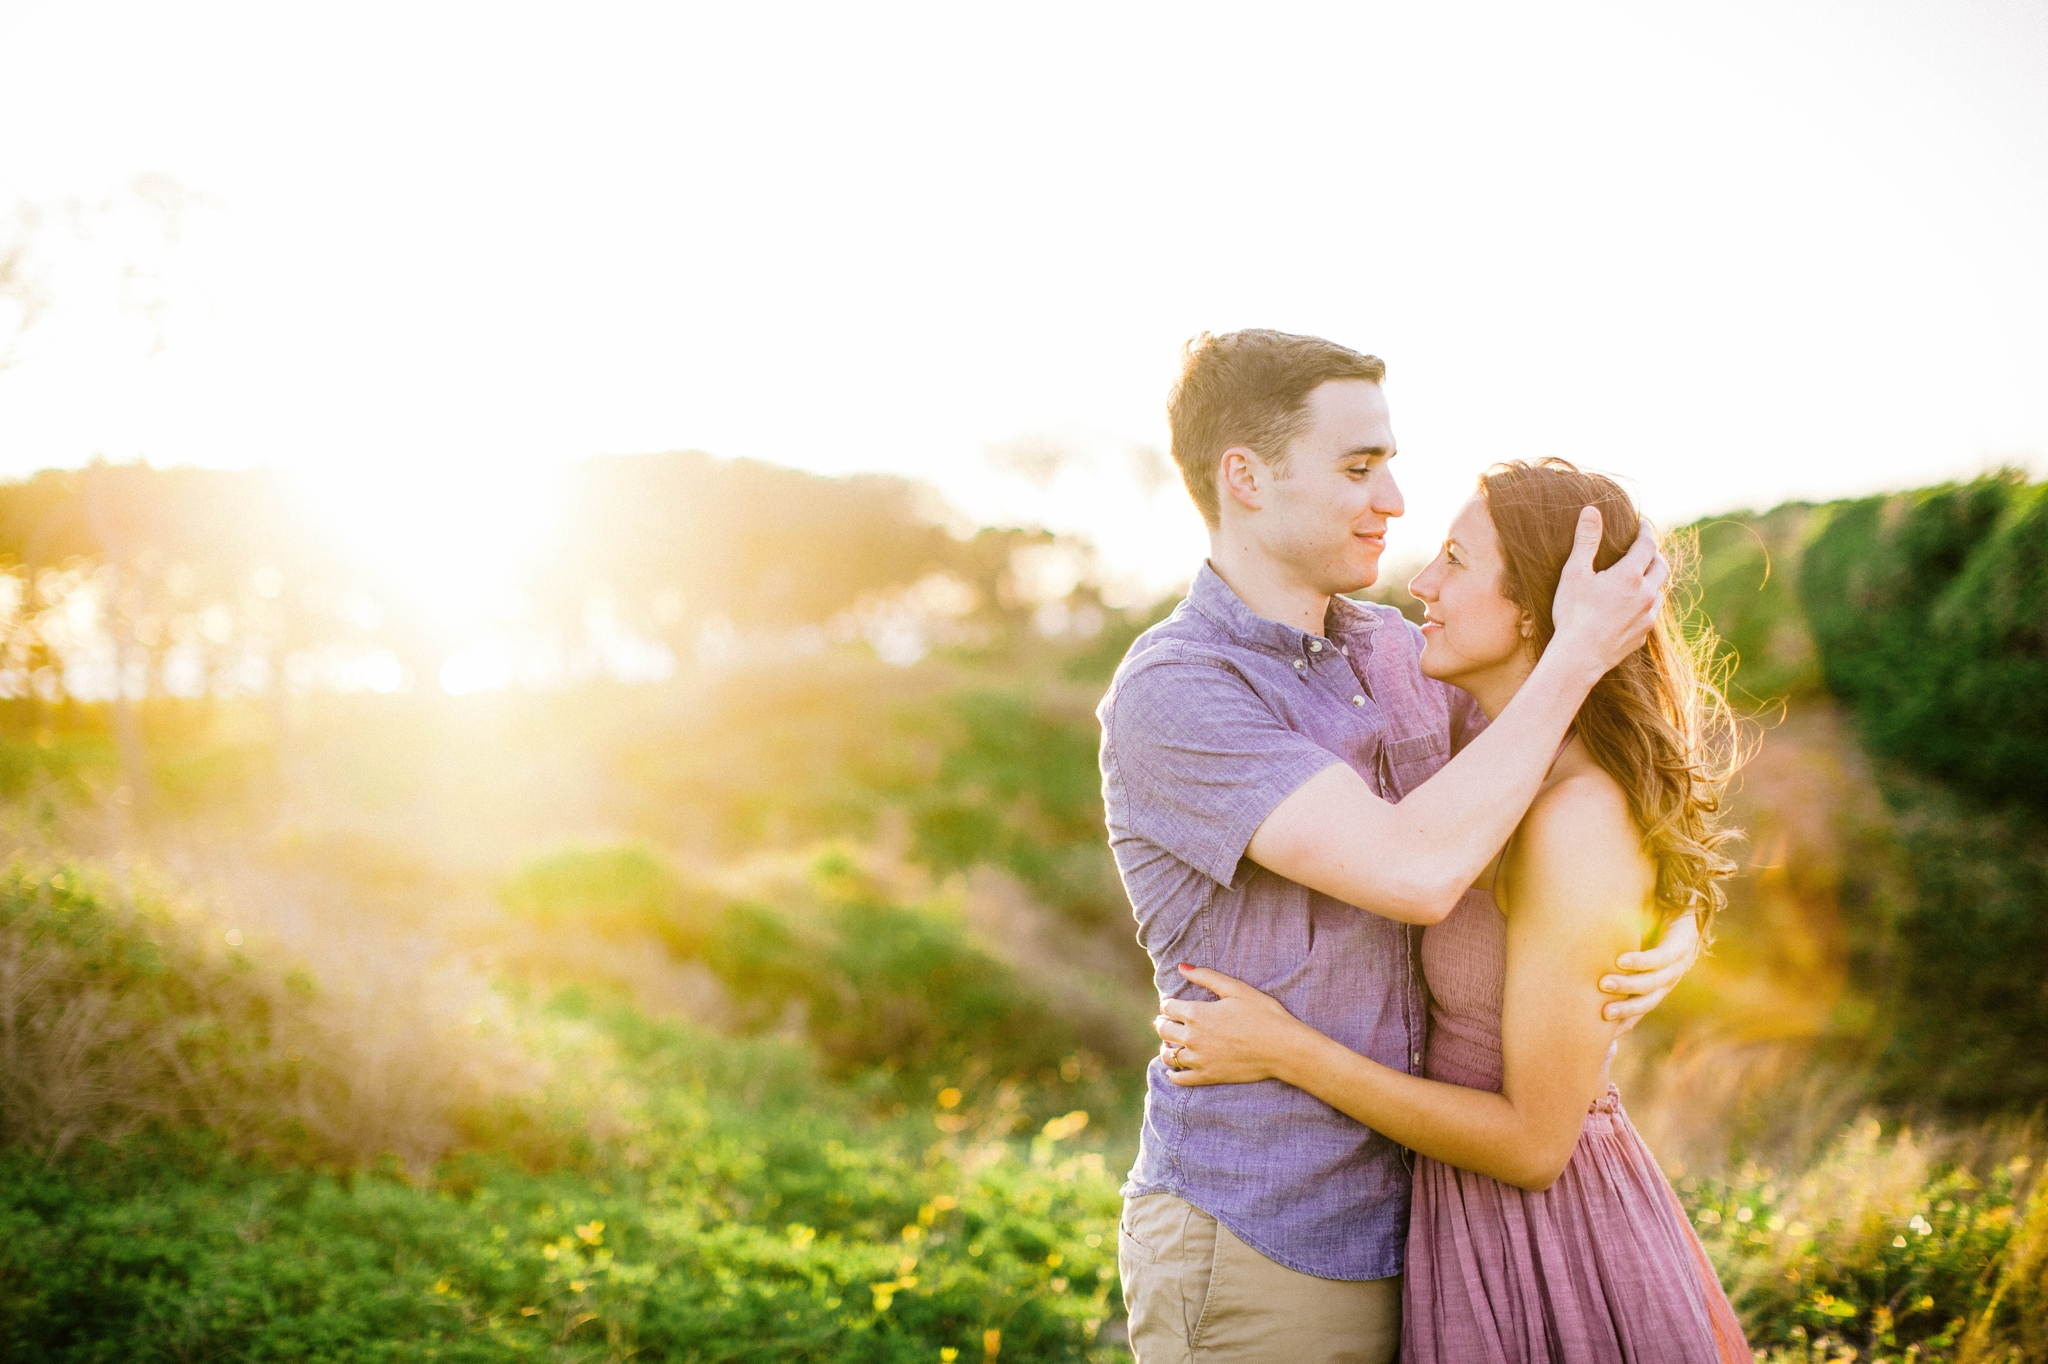 couple looking at each other while his hand is in her hair - in front of lush green dunes and hills with the sunset behind them - Woman is in a flowy pastel maxi dress - outdoor golden light session - engagement photographer in honolulu, oahu, hawaii - johanna dye photography